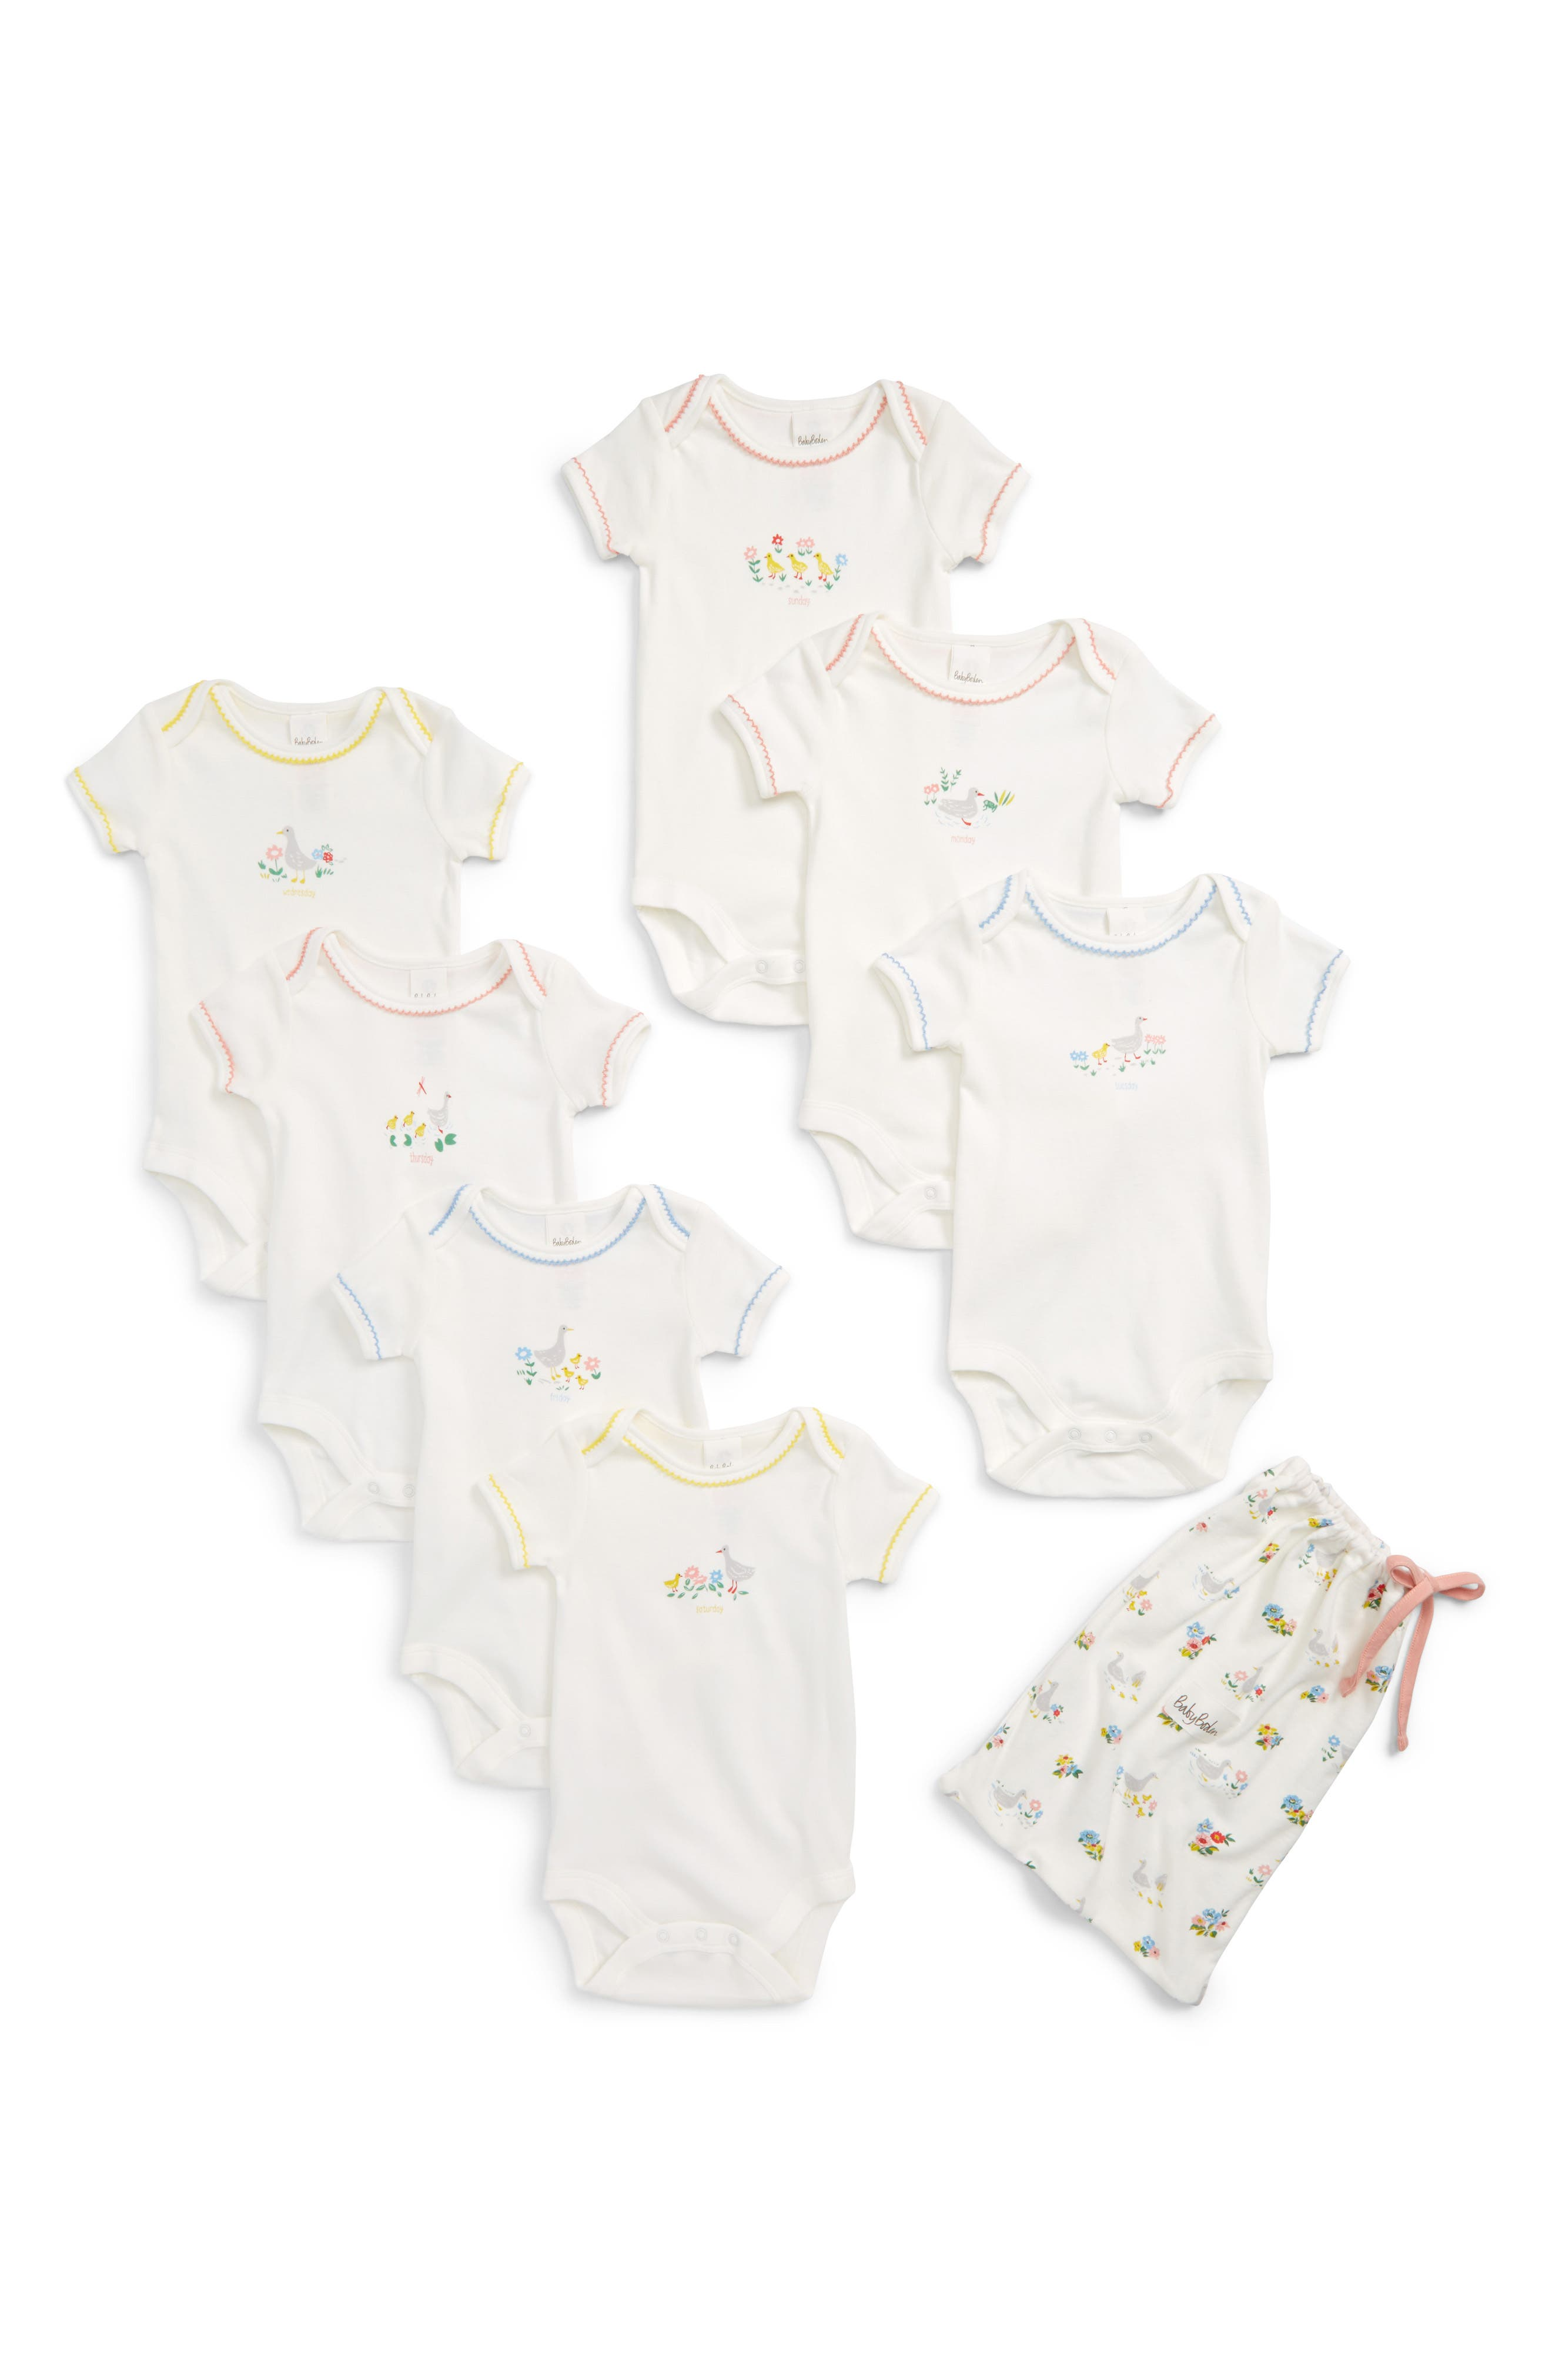 Mini Boden River Ducks Set of 7 Bodysuits (Baby)